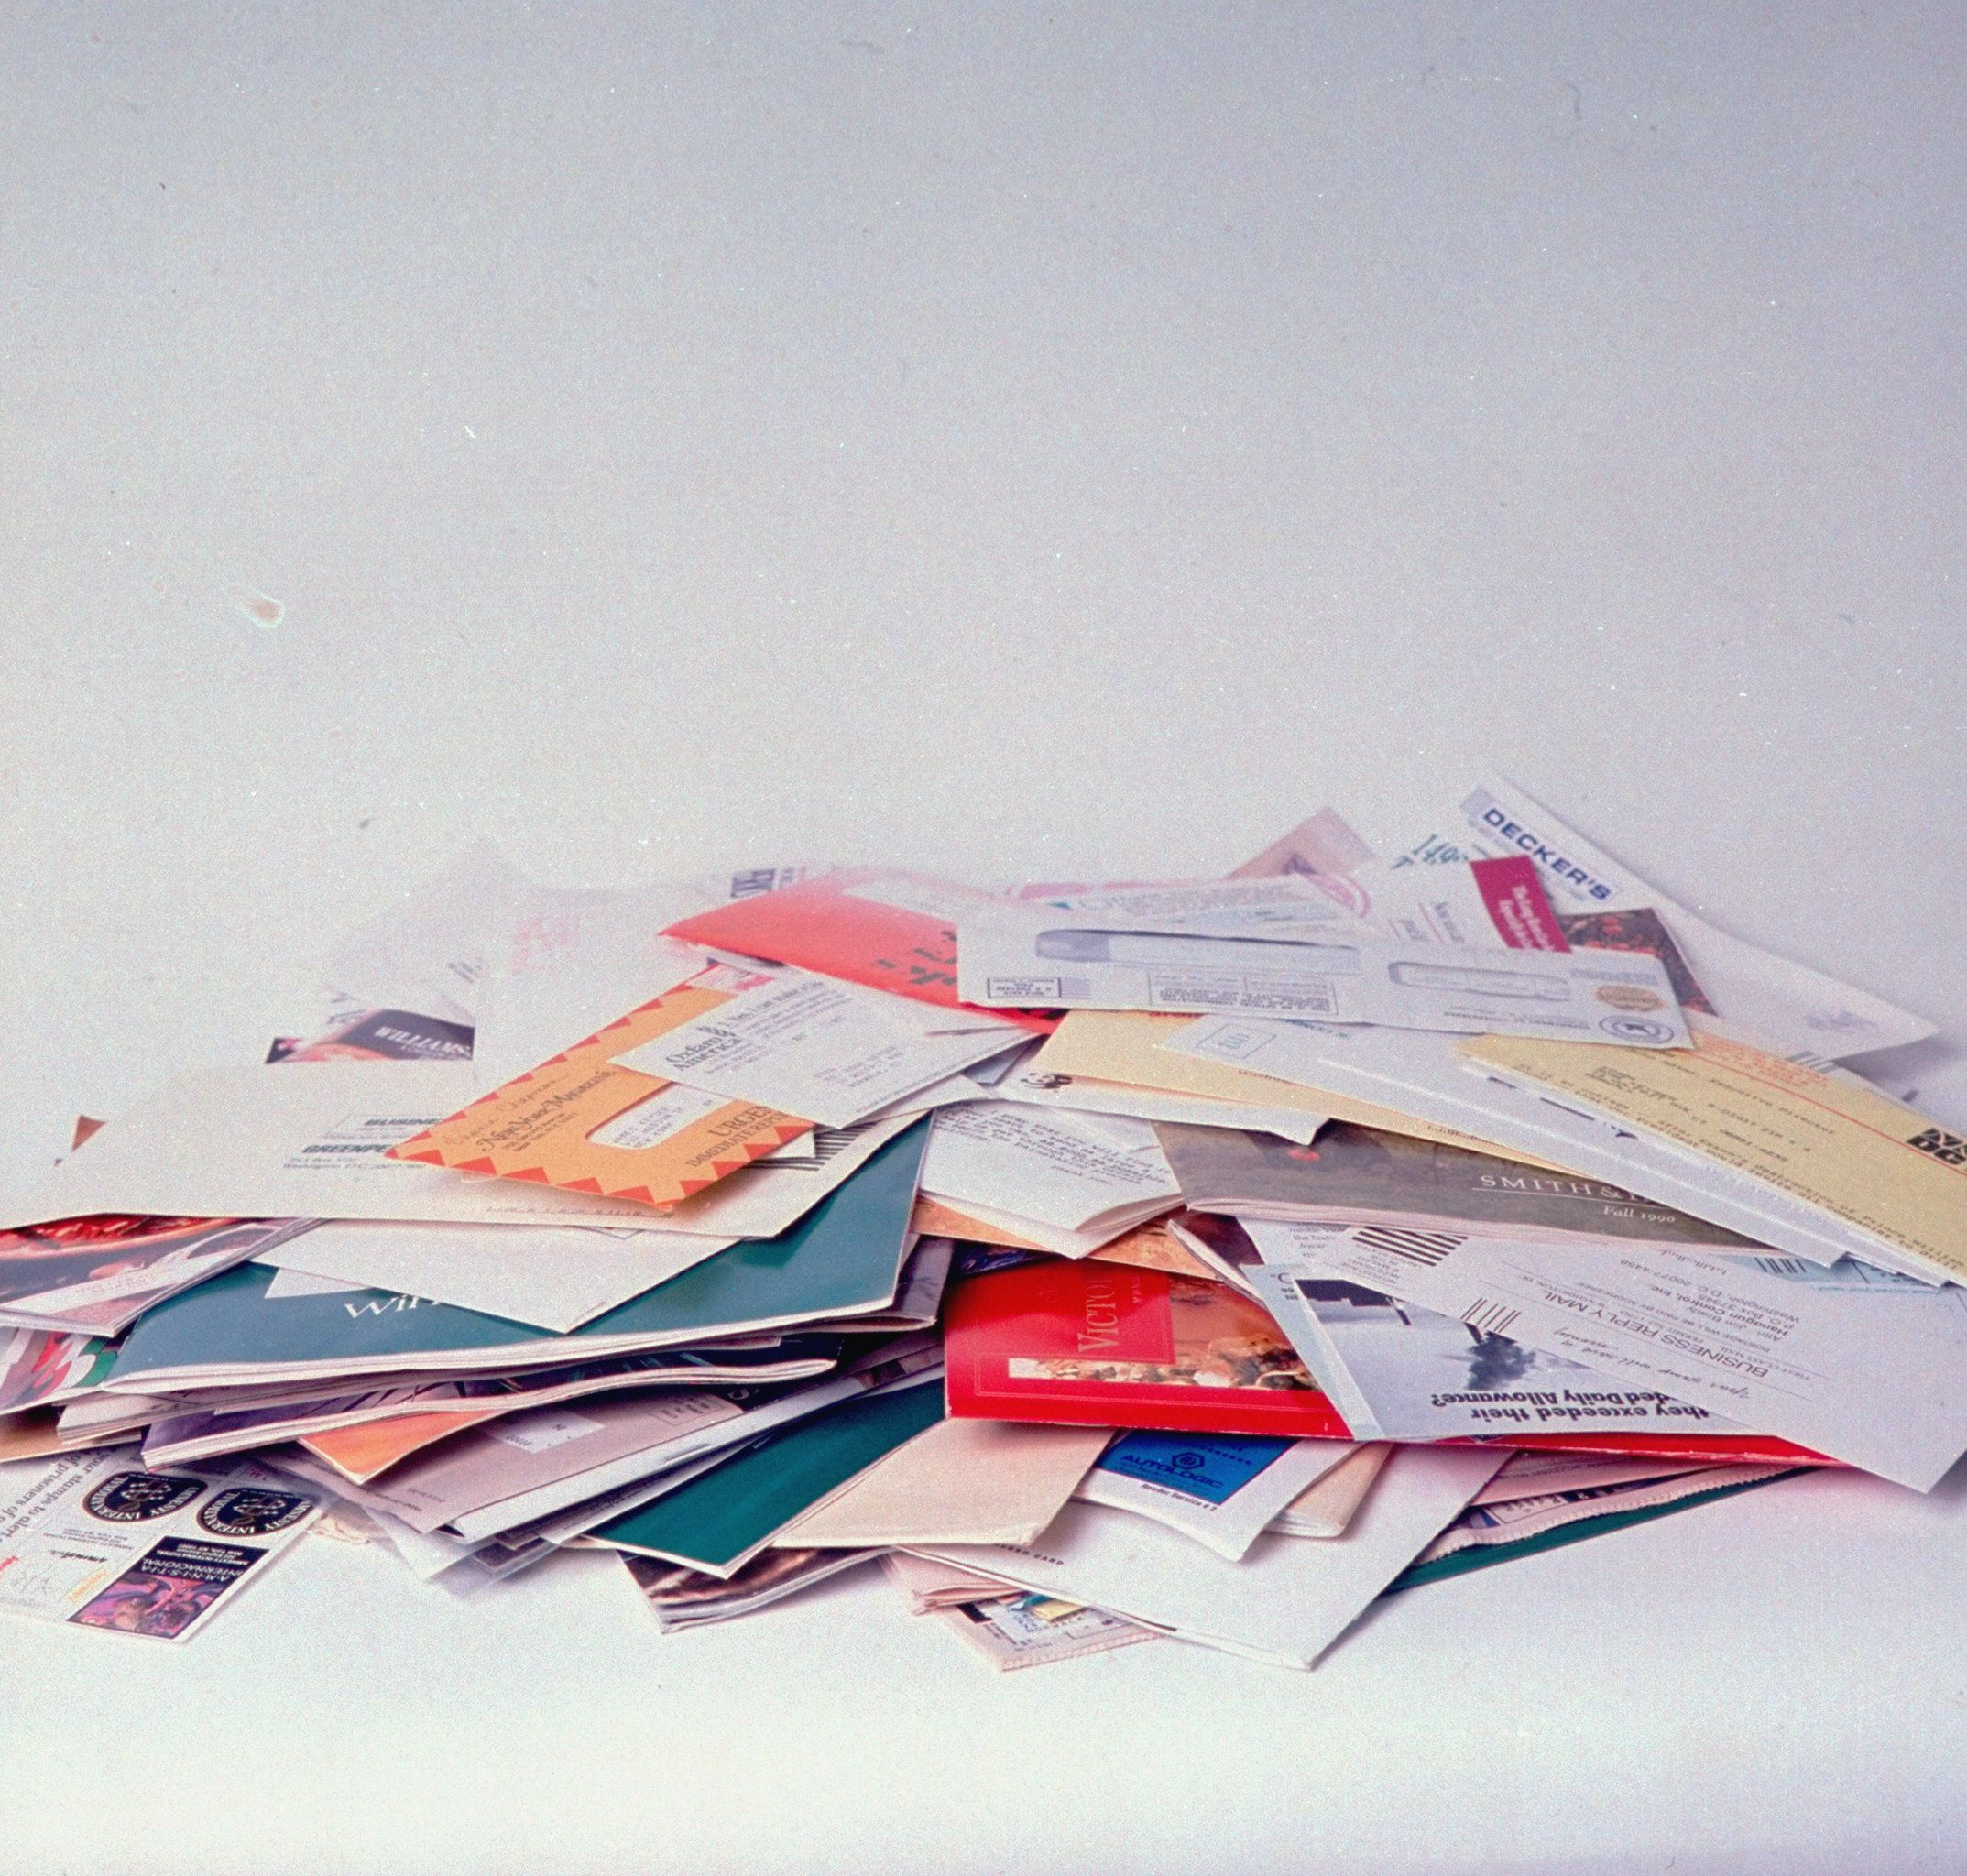 Large pile of misc. junk mail.  (Photo by James Keyser/The LIFE Images Collection/Getty Images)